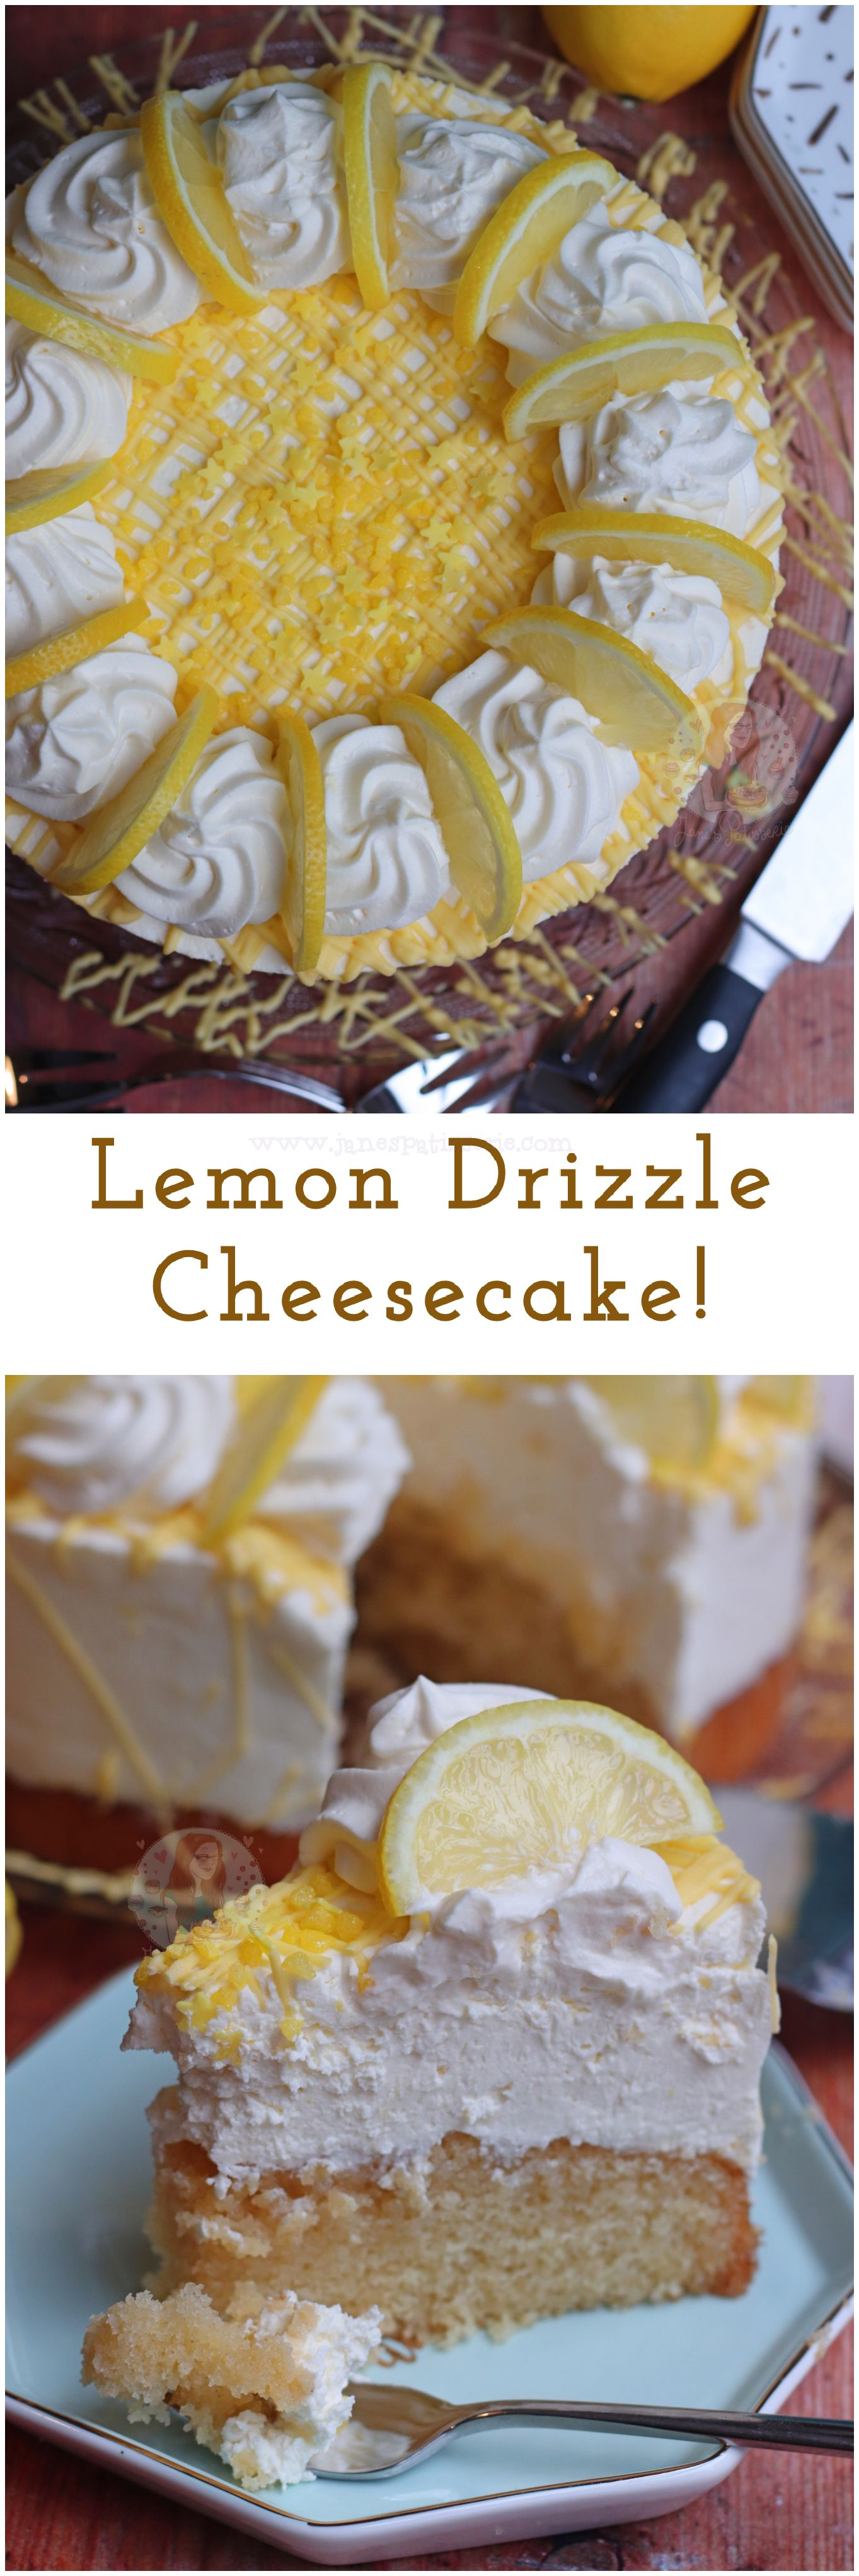 Lemon Drizzle Cheesecake!! A Lemon Drizzle soaked Lemon Sponge with a No-Bake Lemon Cheesecake Topping… a Lemon Drizzle Cheesecake! -   23 lemon cheesecake recipes ideas